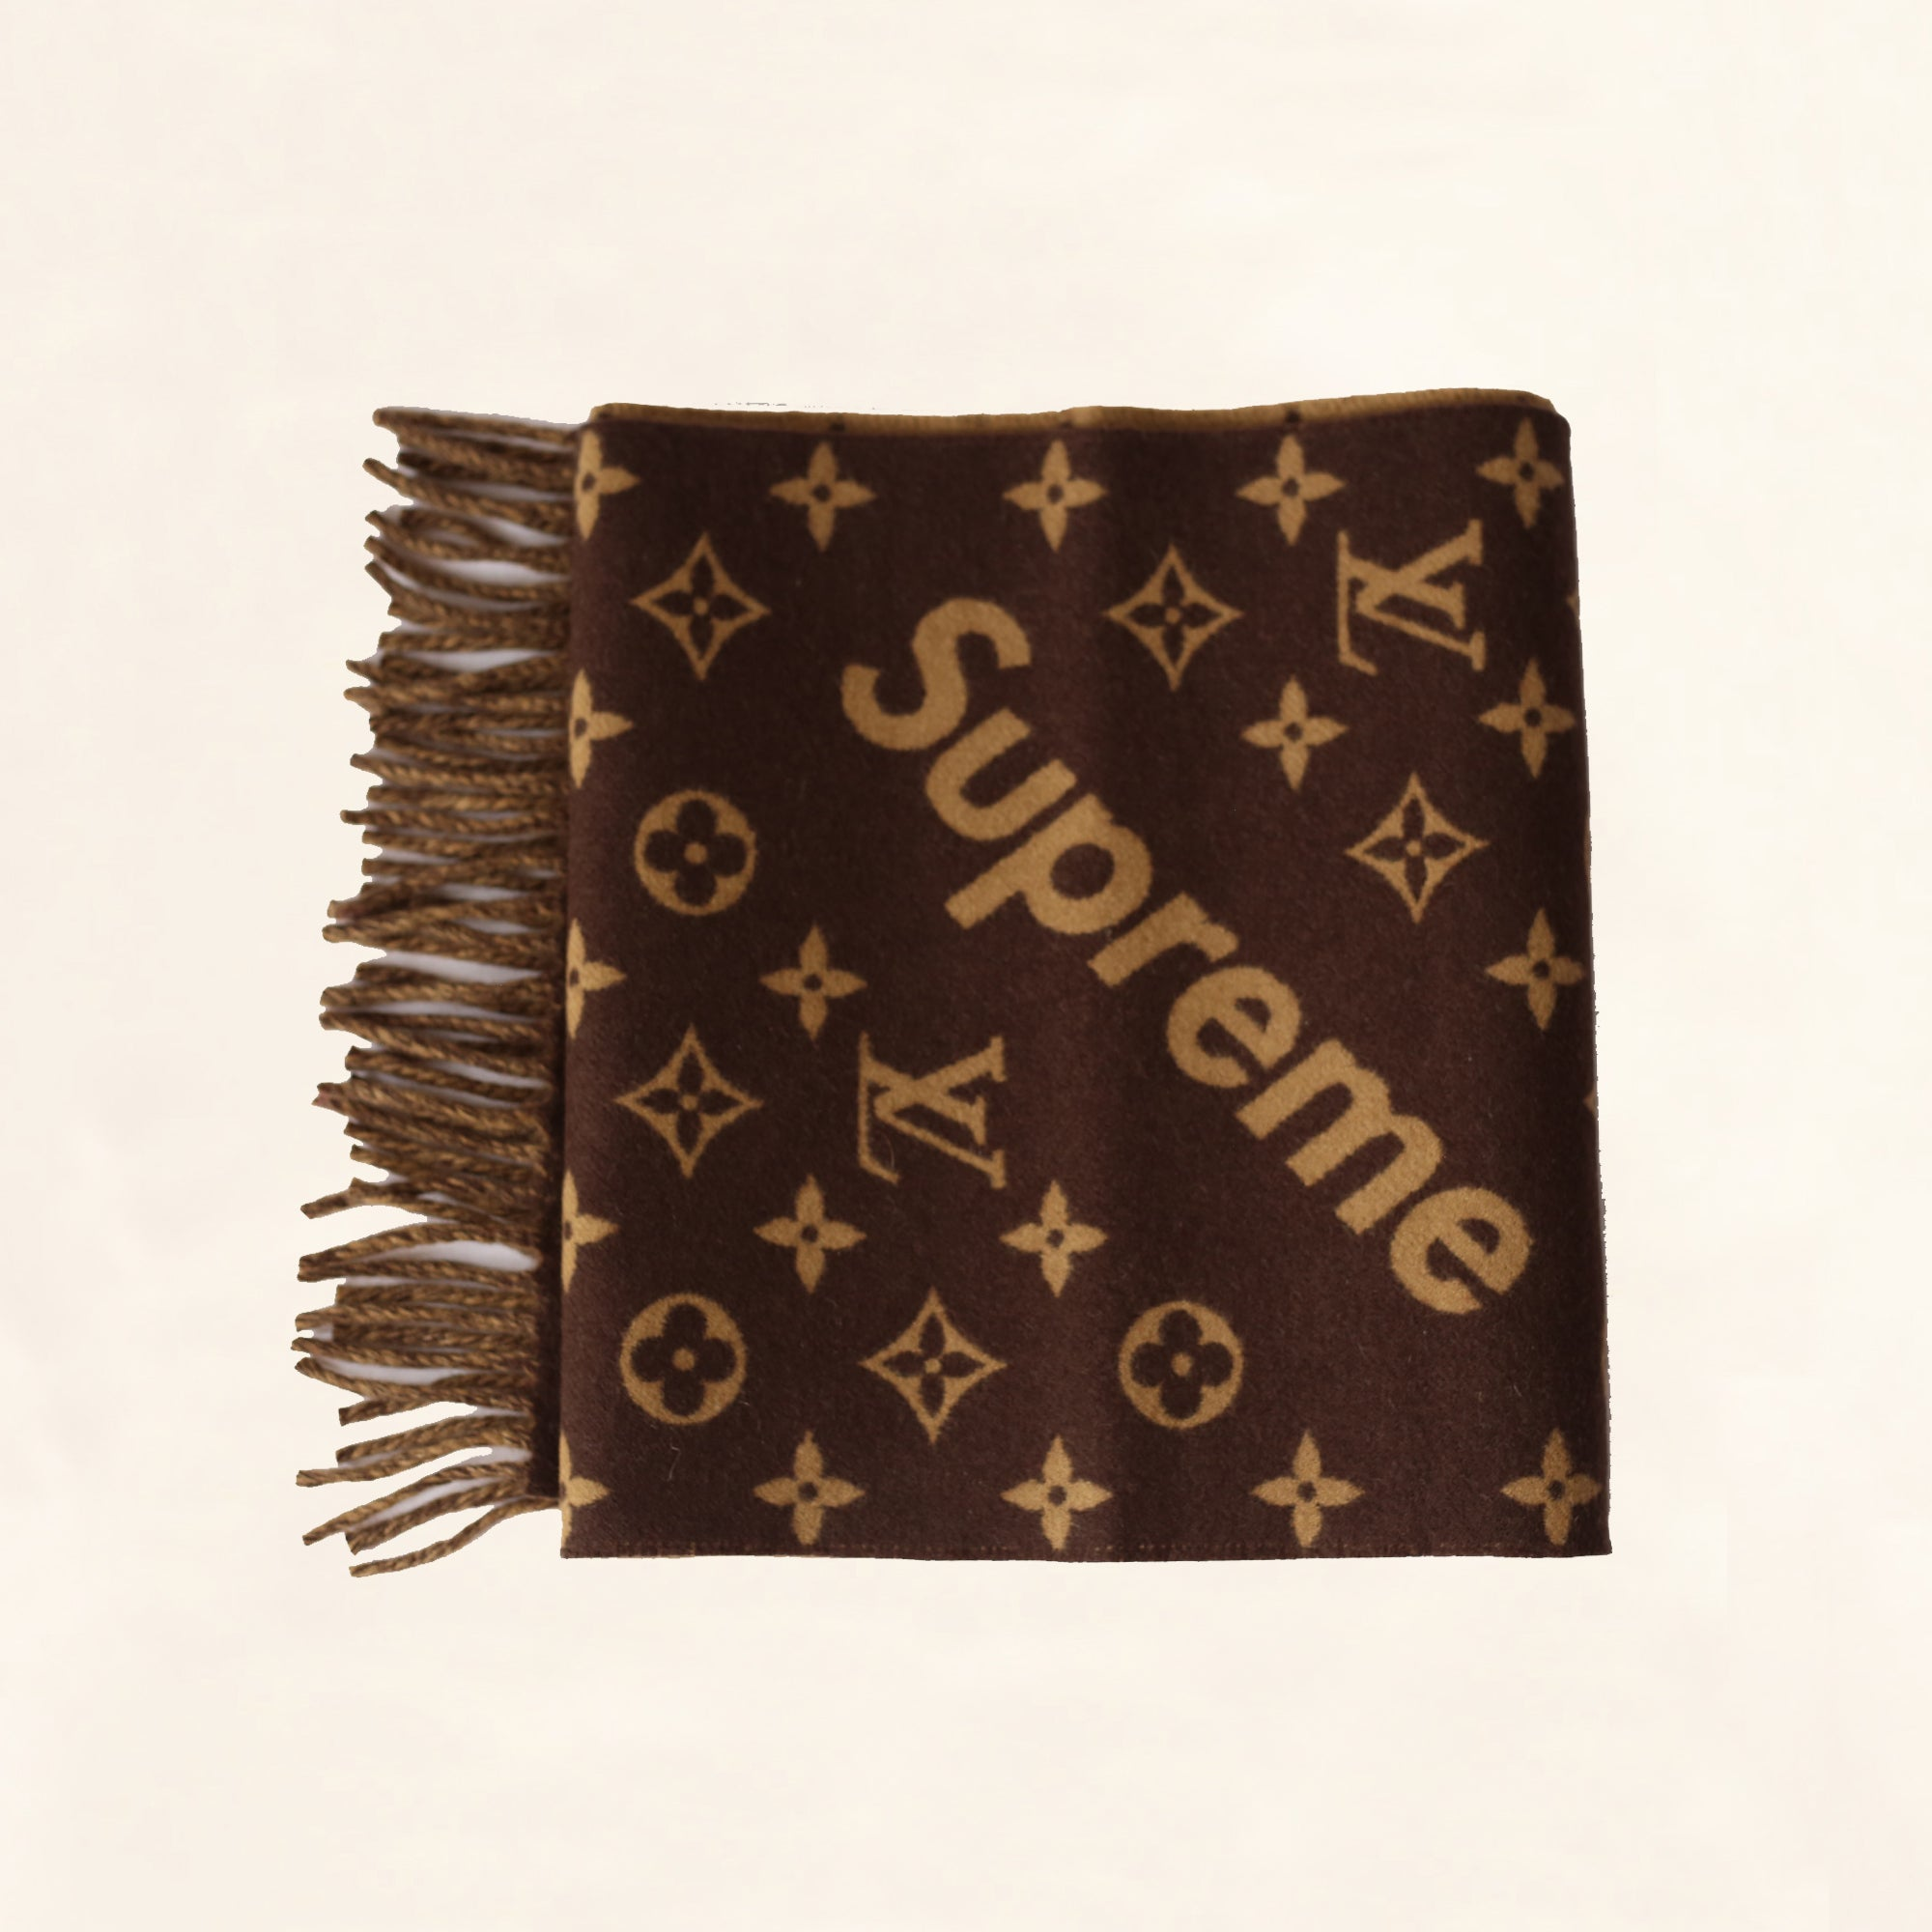 louis vuitton supreme scarf brown the collectory. Black Bedroom Furniture Sets. Home Design Ideas